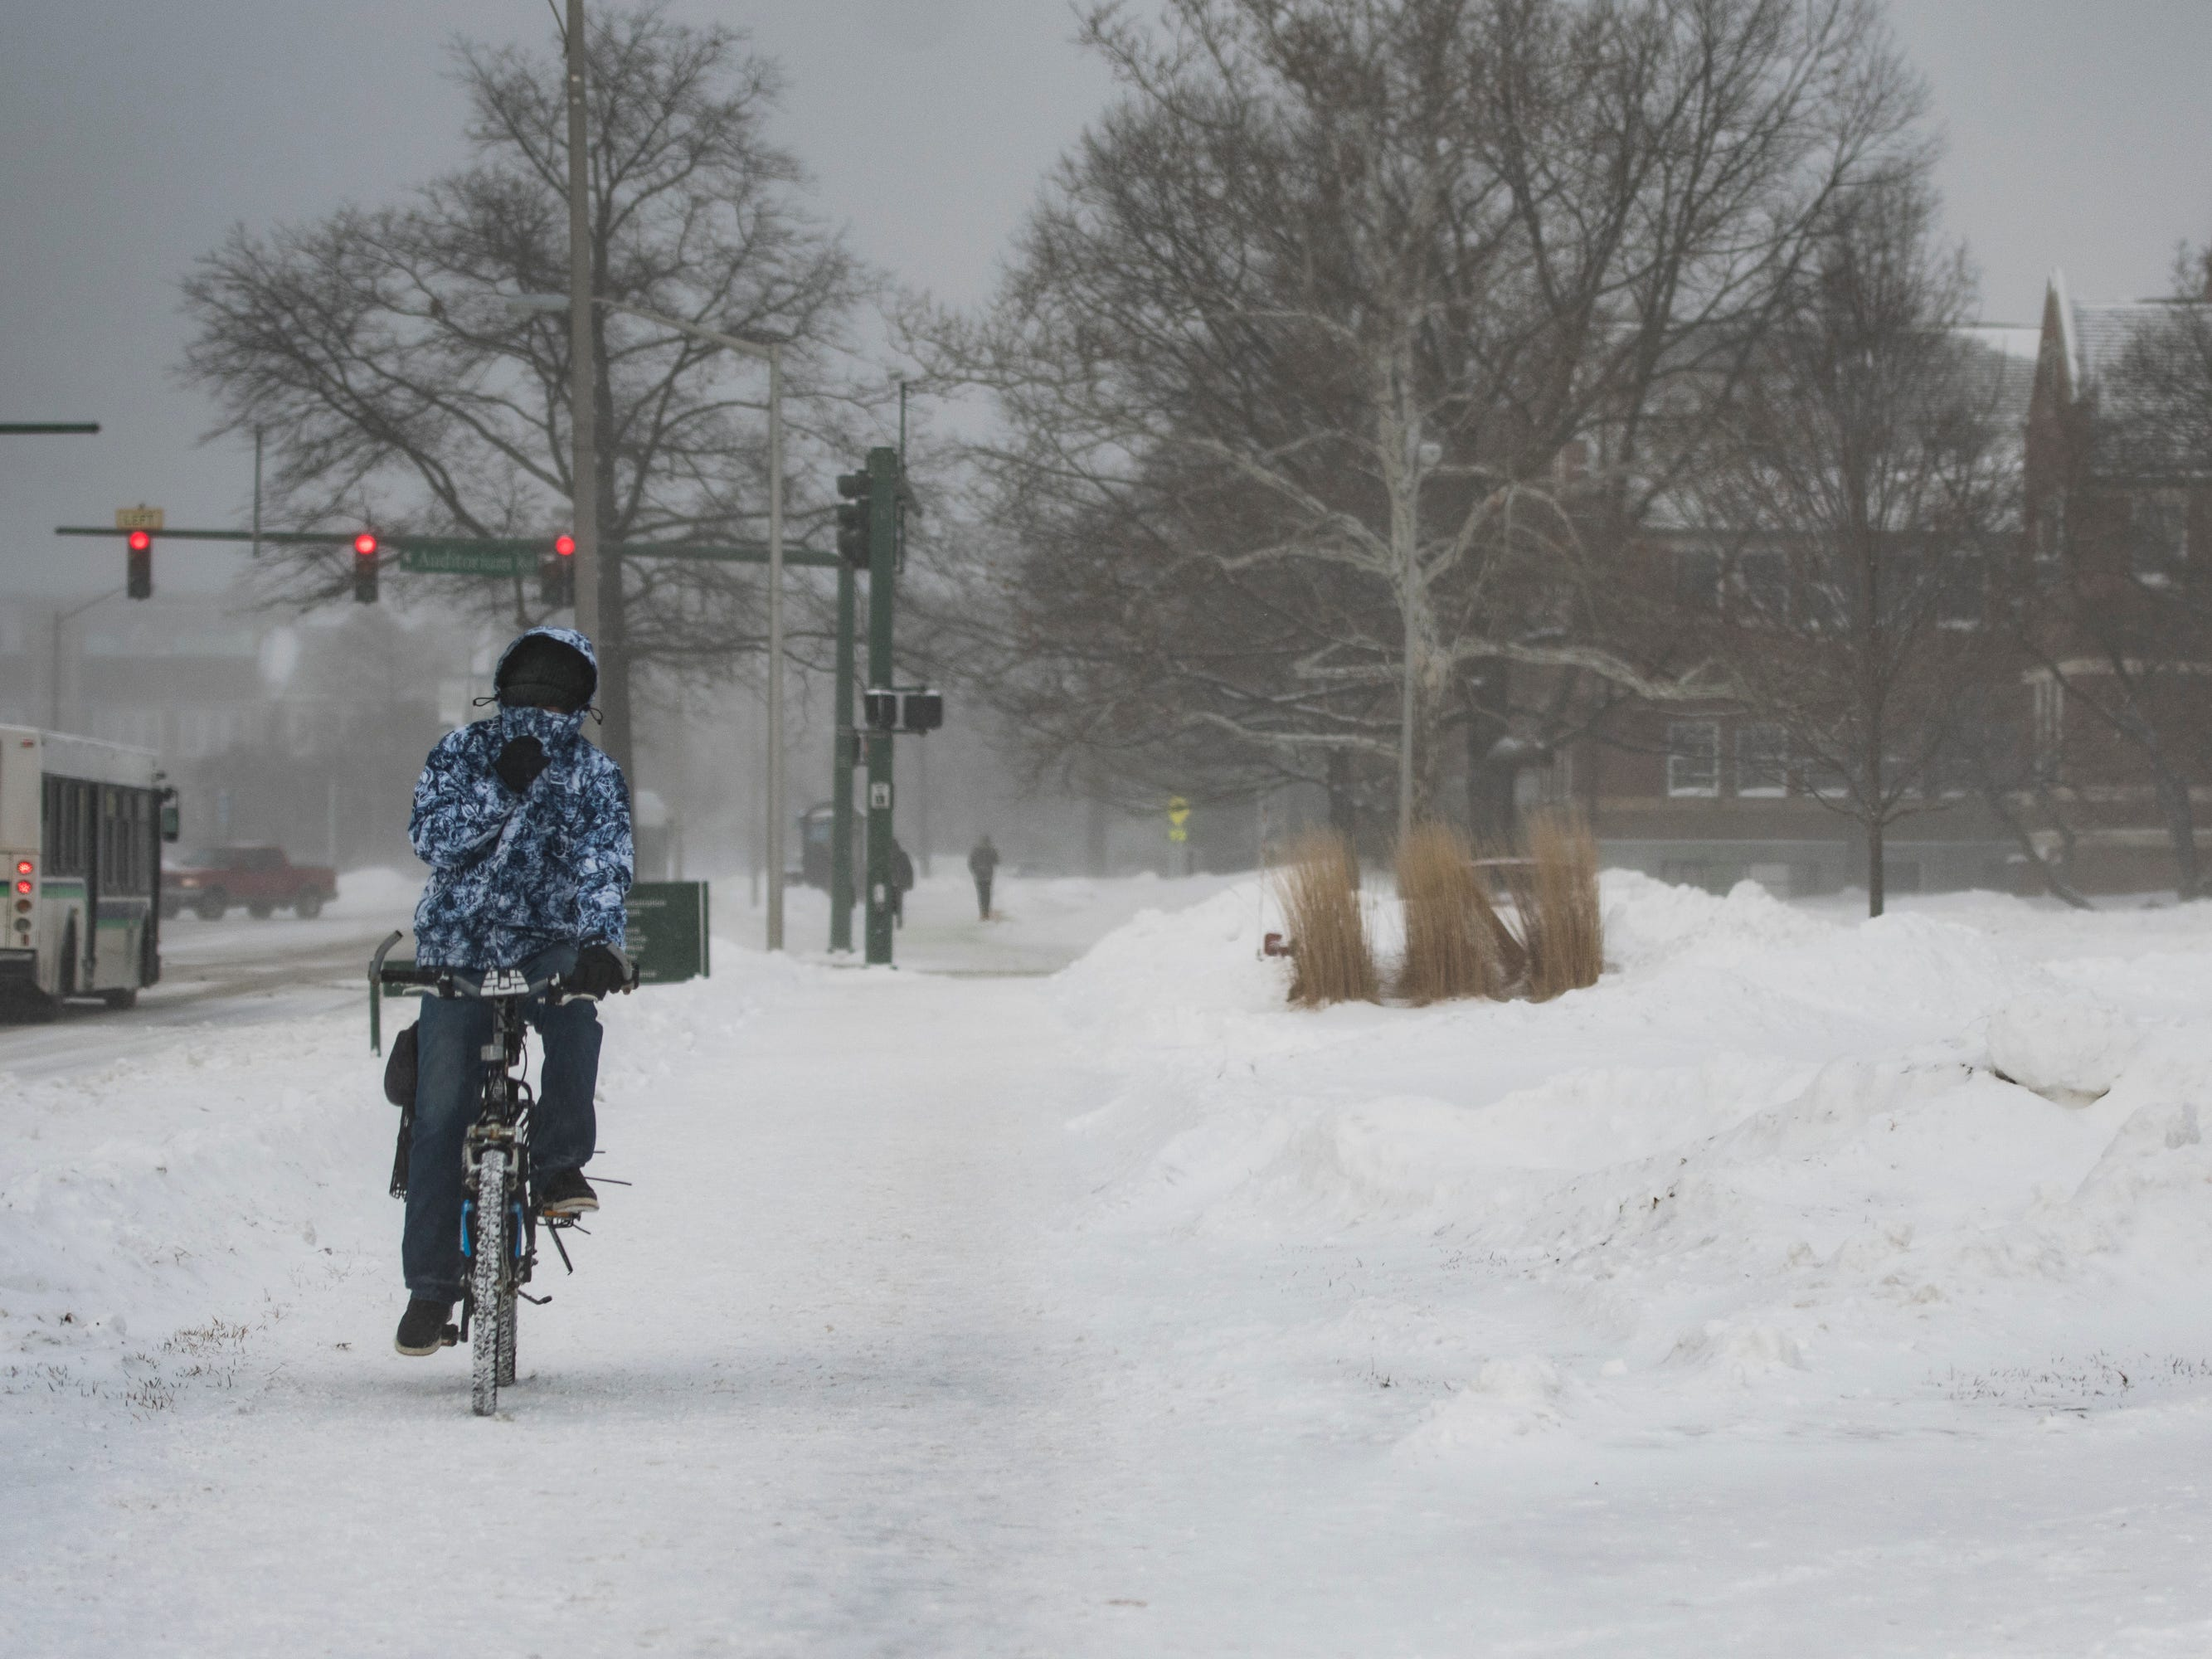 Despite sub-zero windchills, a bicyclist makes his way across campus on the campus of Michigan State University Tuesday, Jan. 29, 2019, in East Lansing, Michigan.  MSU has called off classes tommorow due to bitter temperatures.  [USA Today Network/Matthew Dae Smith/Lansing State Journal]